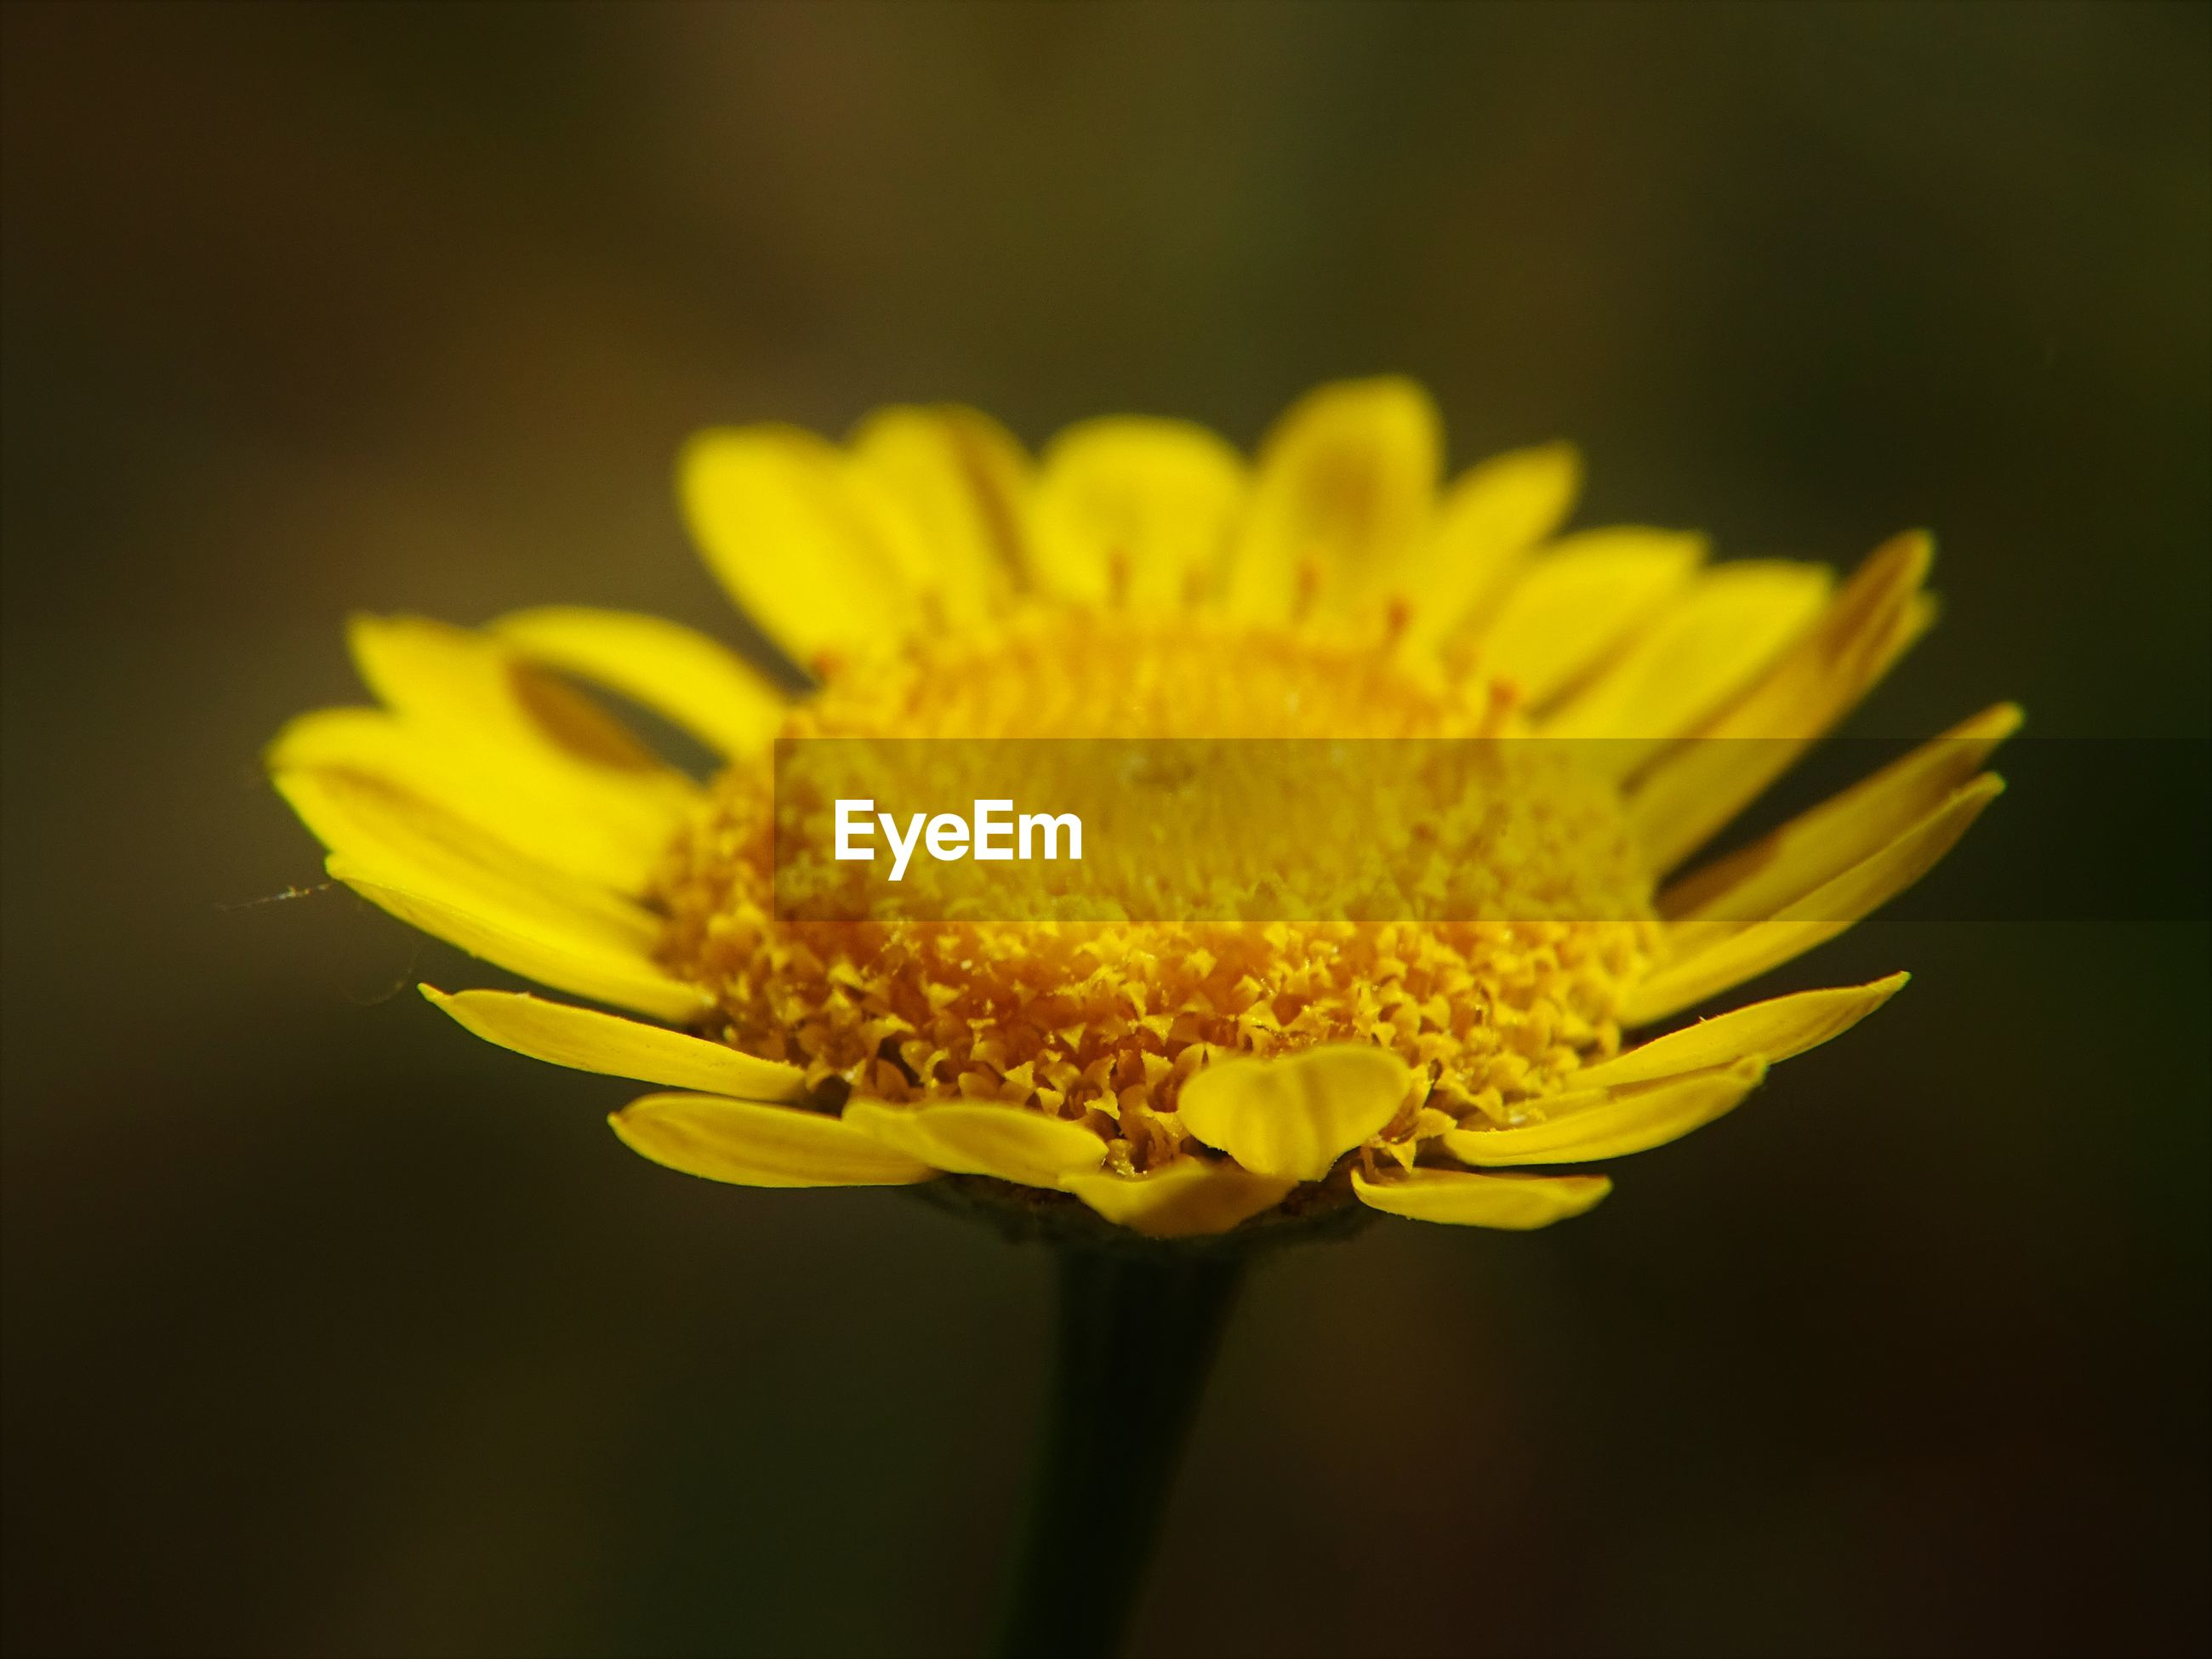 Close-up of a yellow flower against blurred background